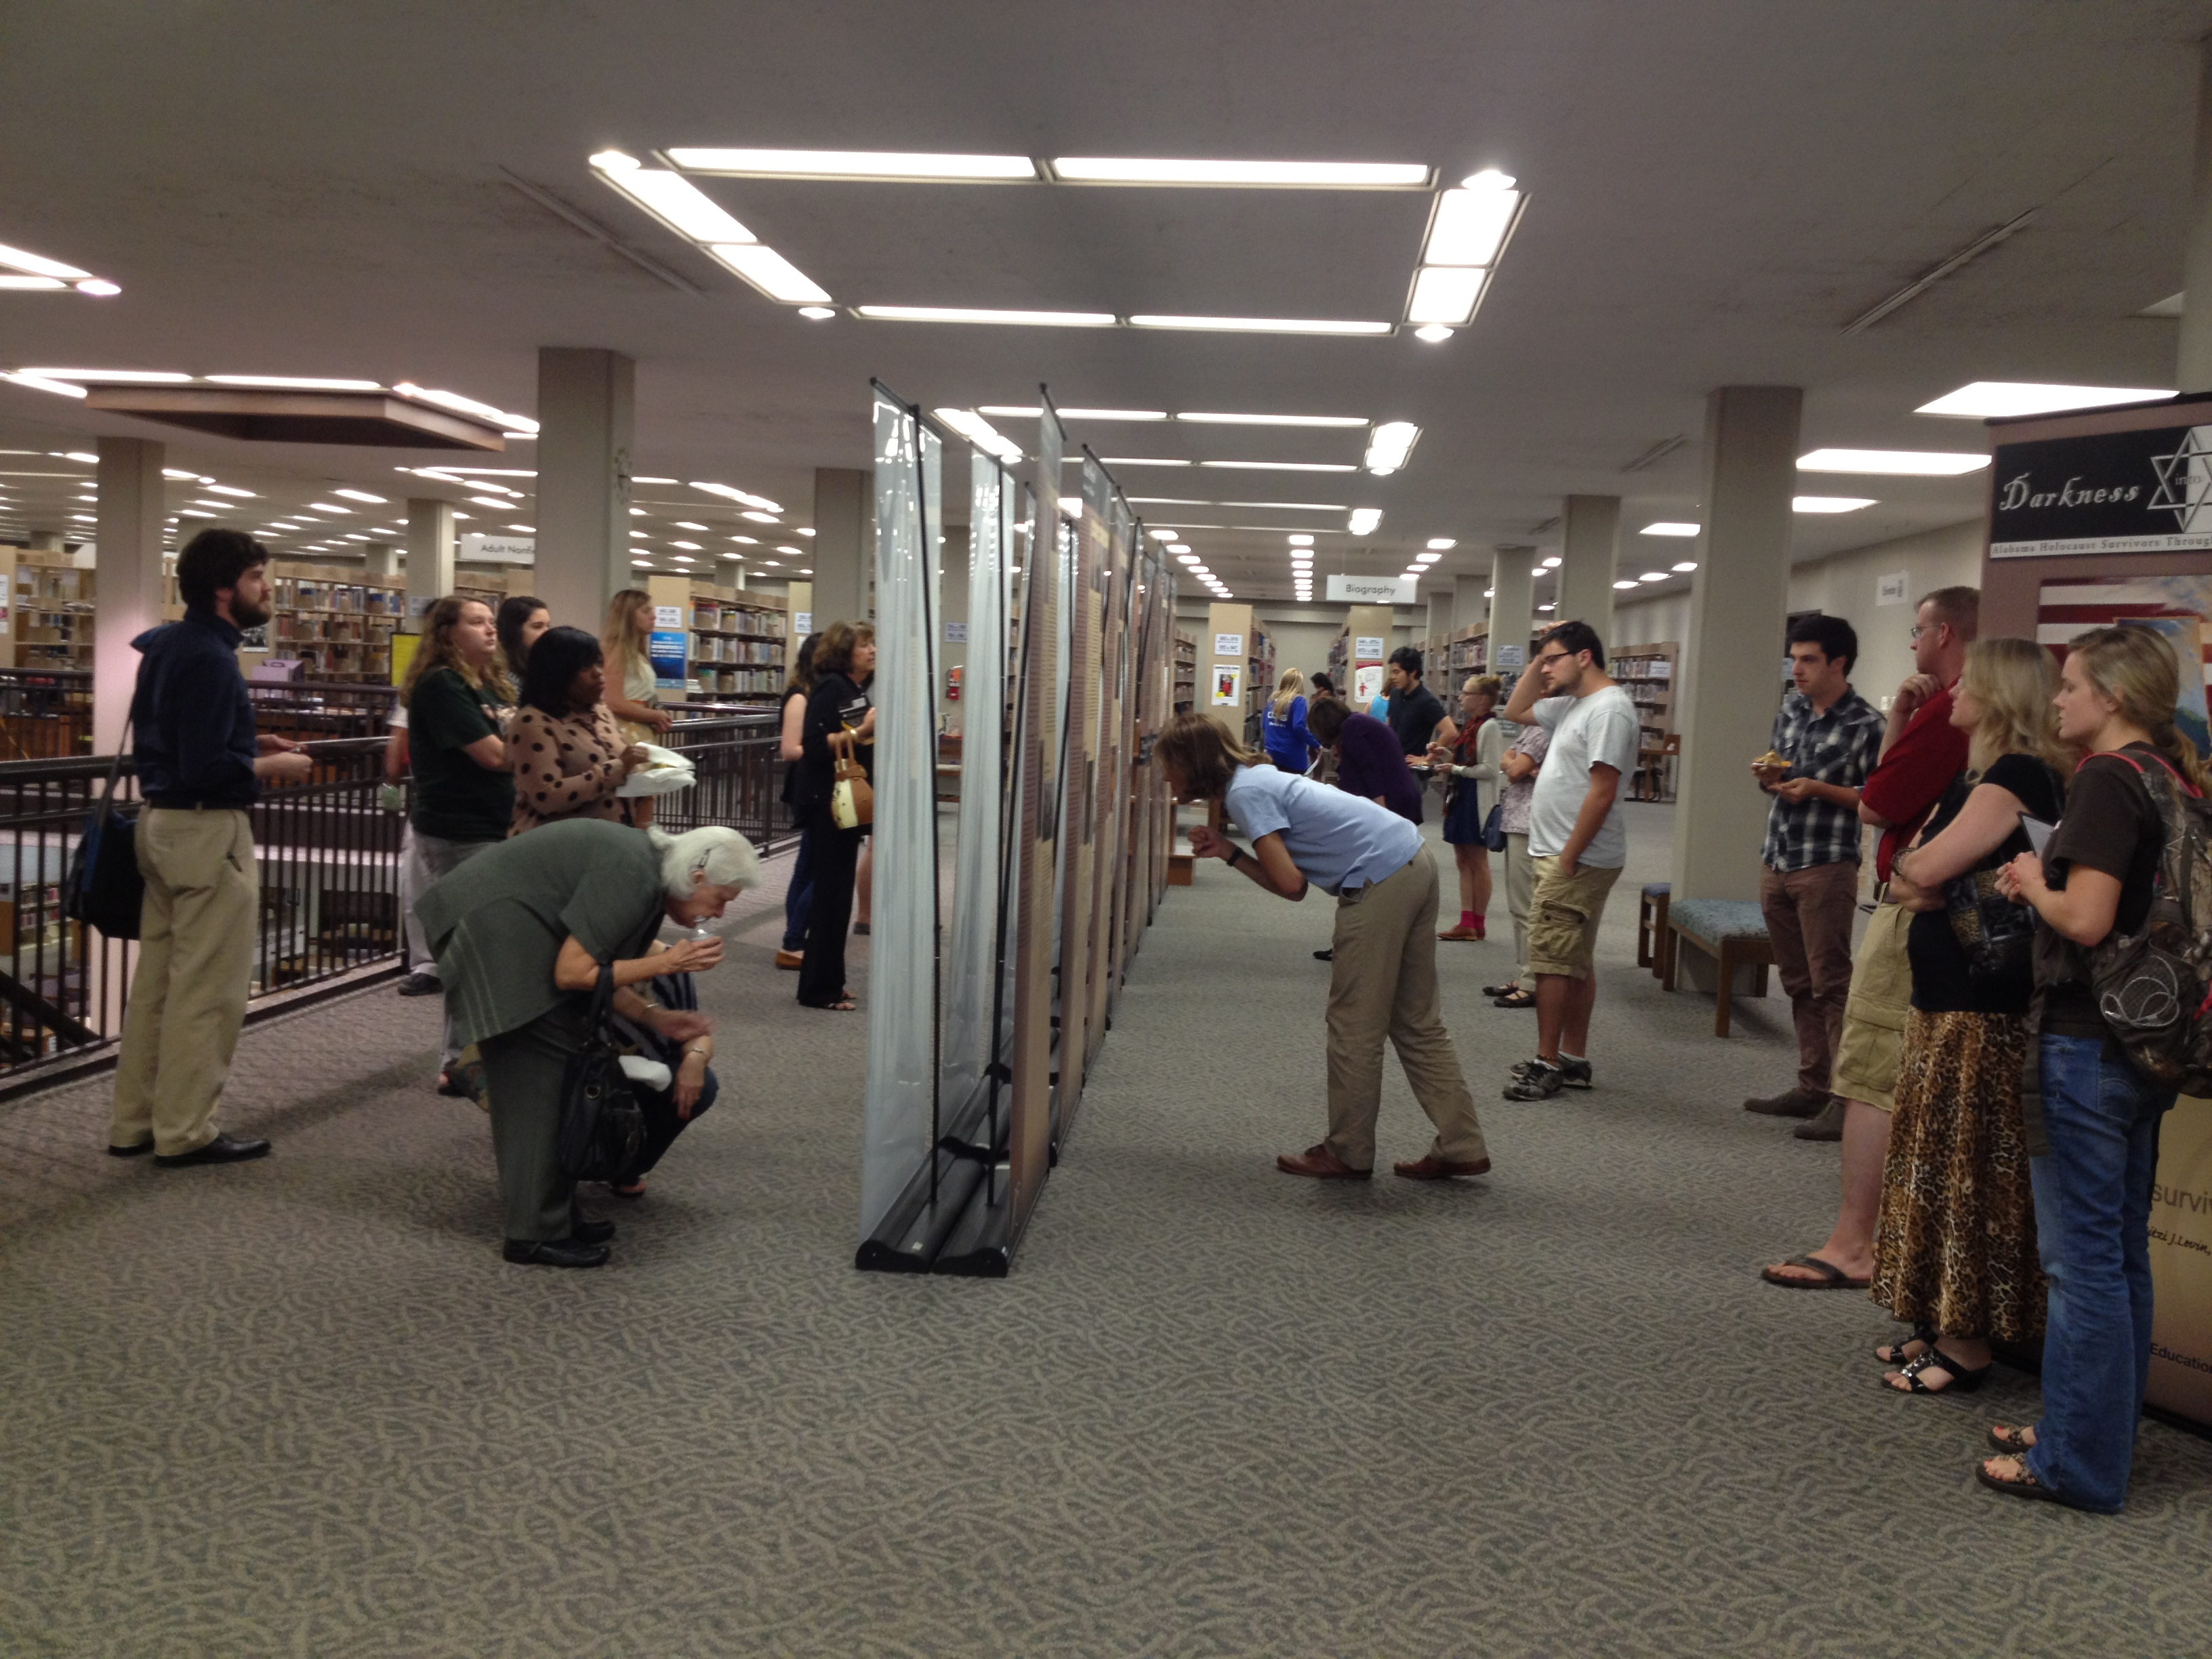 Visitors view the Holocaust Exhibit at the Tuscaloosa Public Library